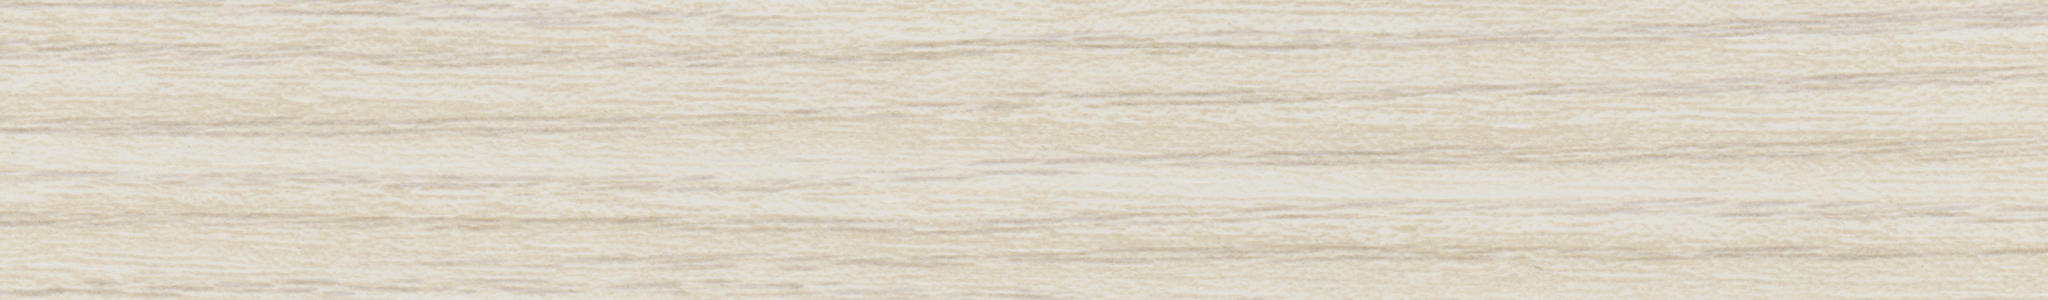 HD 264023 ABS Edge Ash Portland Softmatt